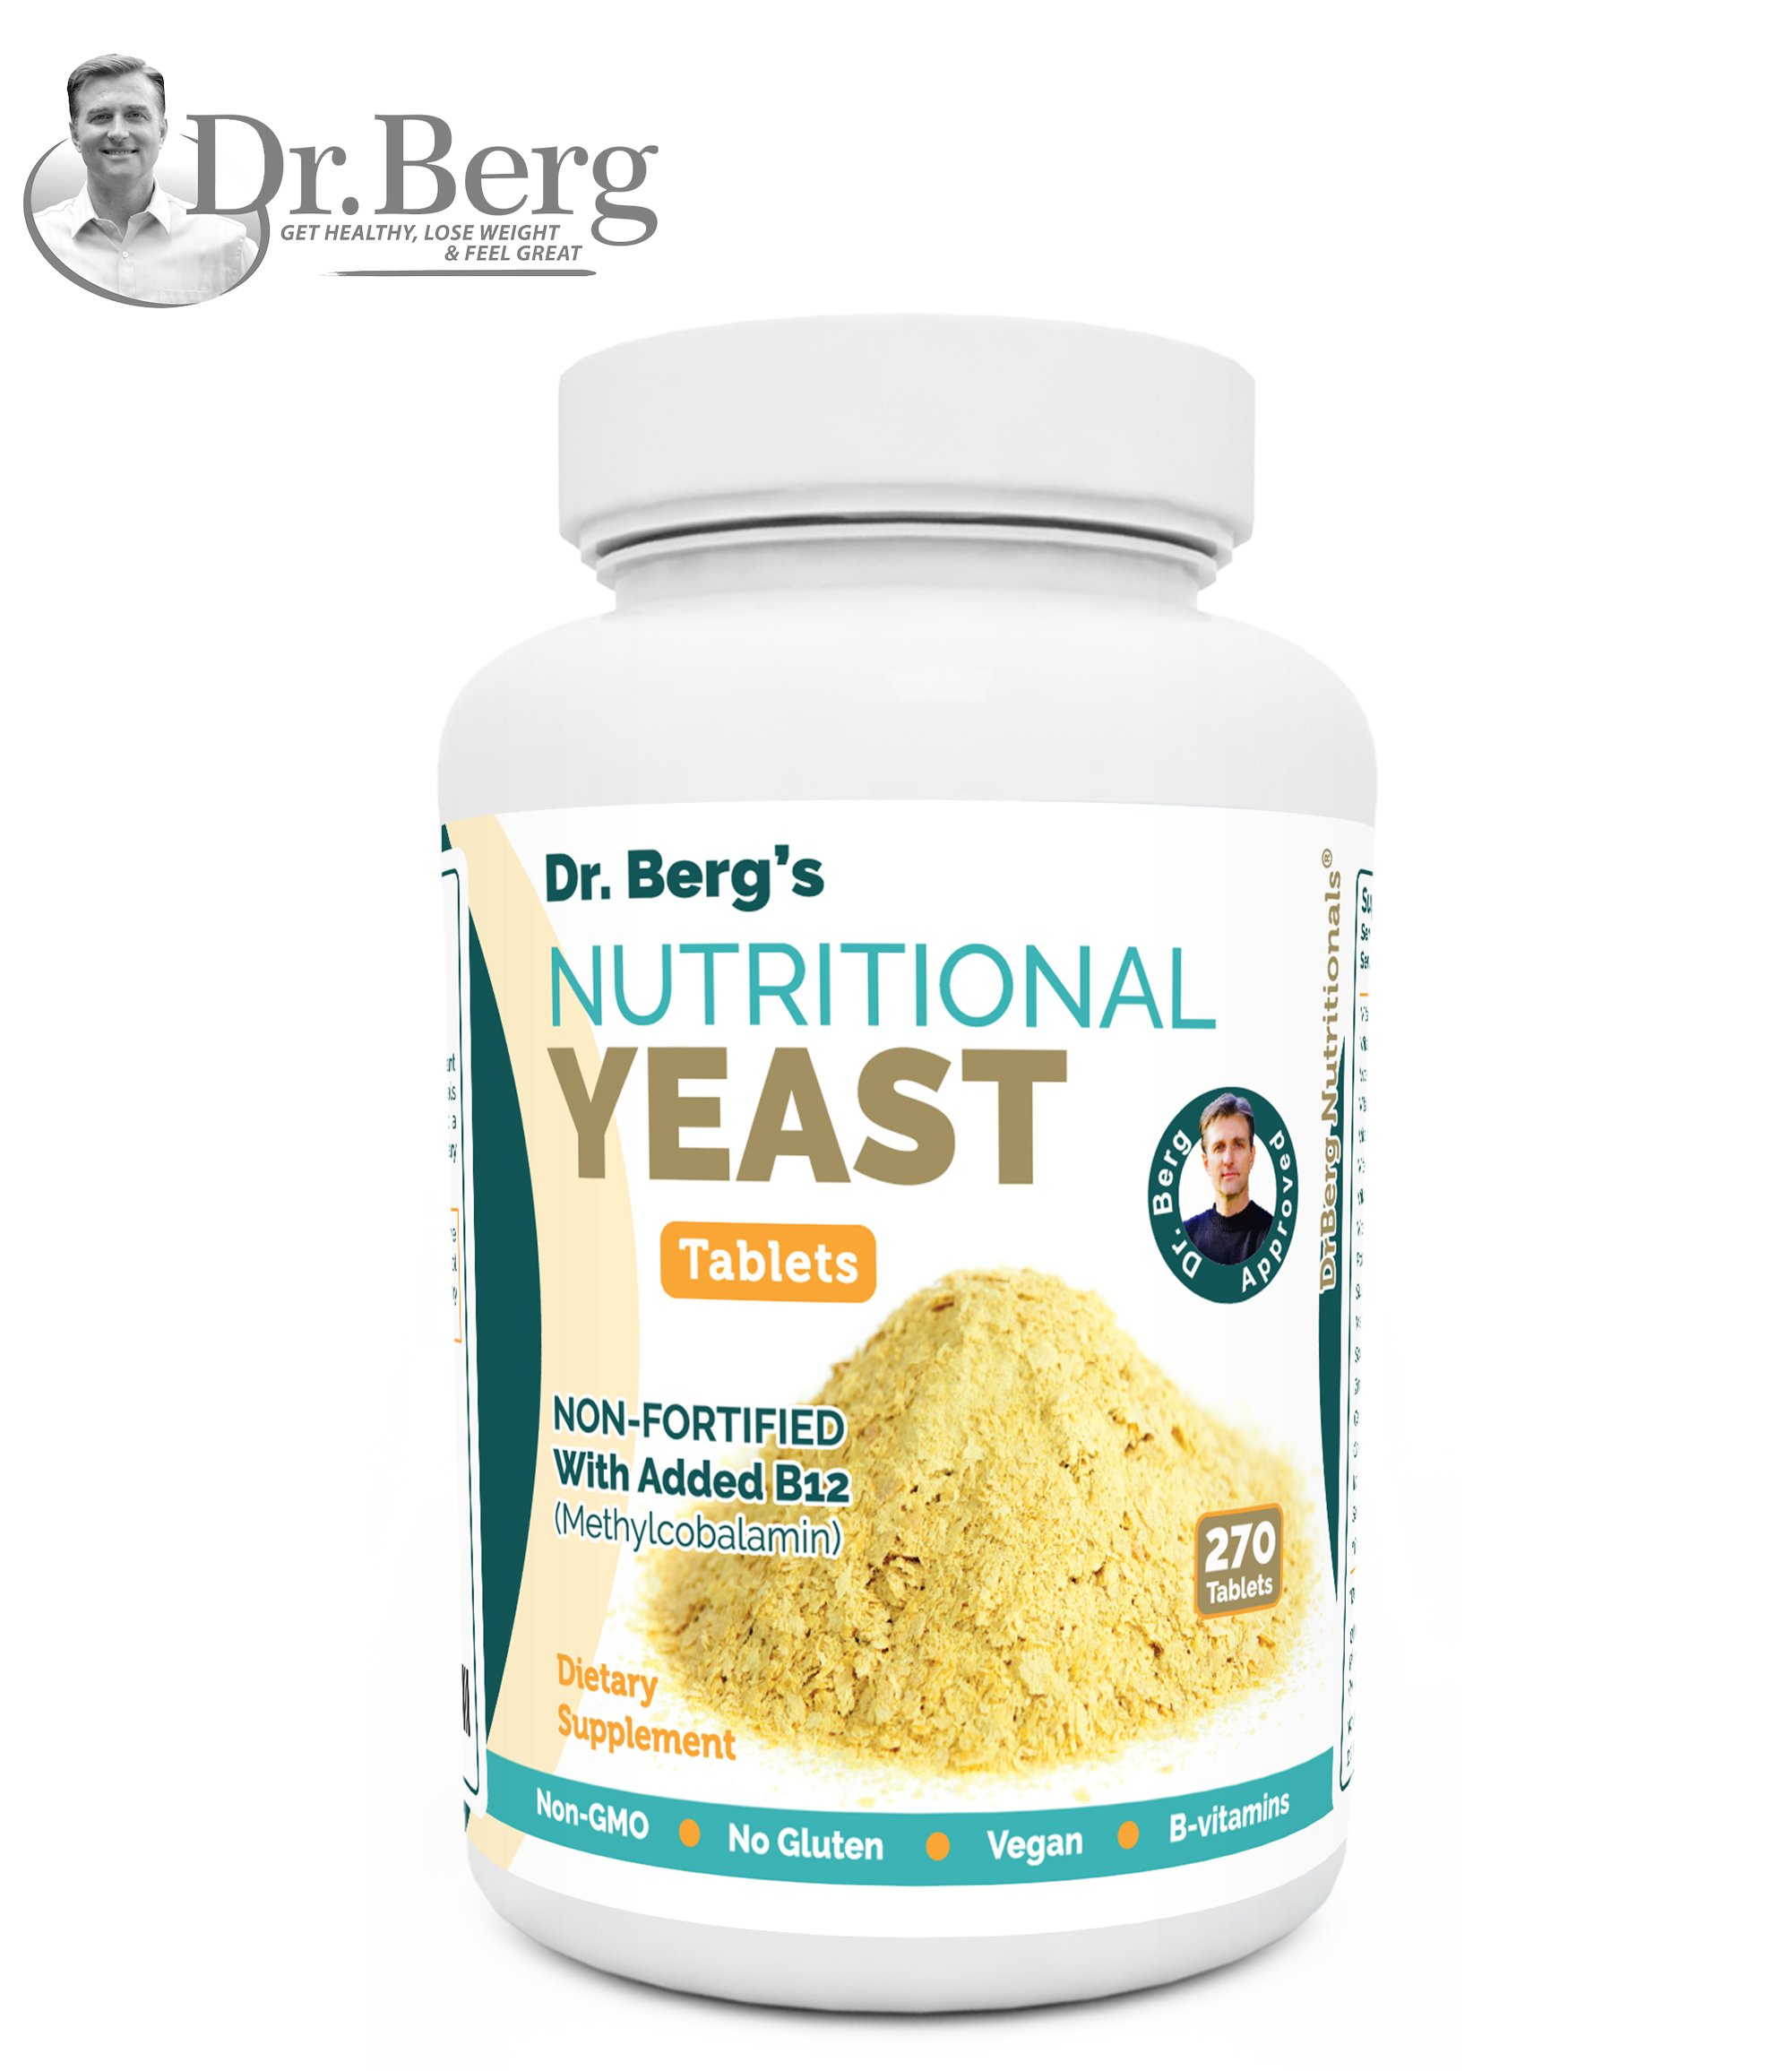 Nutritional Yeast Tablets - Non-Fortified - B-Vitamin Complex - Natural B12 Added - 270 Tablets - No Gluten - Vegan - Non-GMO - Non Synthetics by Dr. Berg's Nutritionals